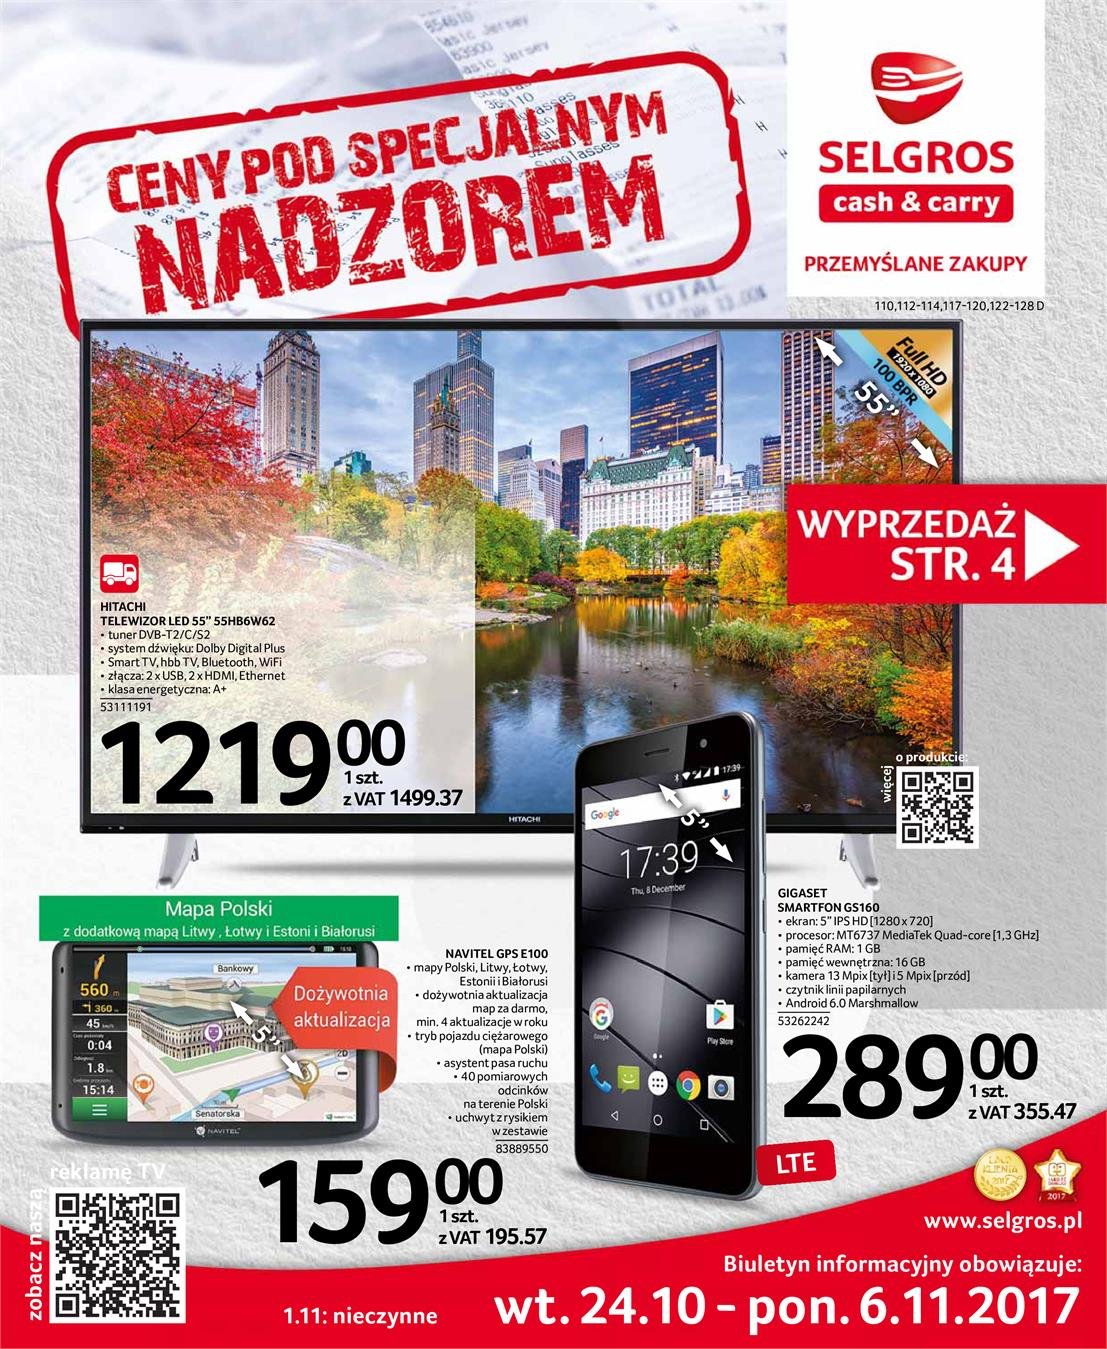 Gazetka Selgros Sp. z o.o. nr 0 od 2017-10-24 do 2017-11-06